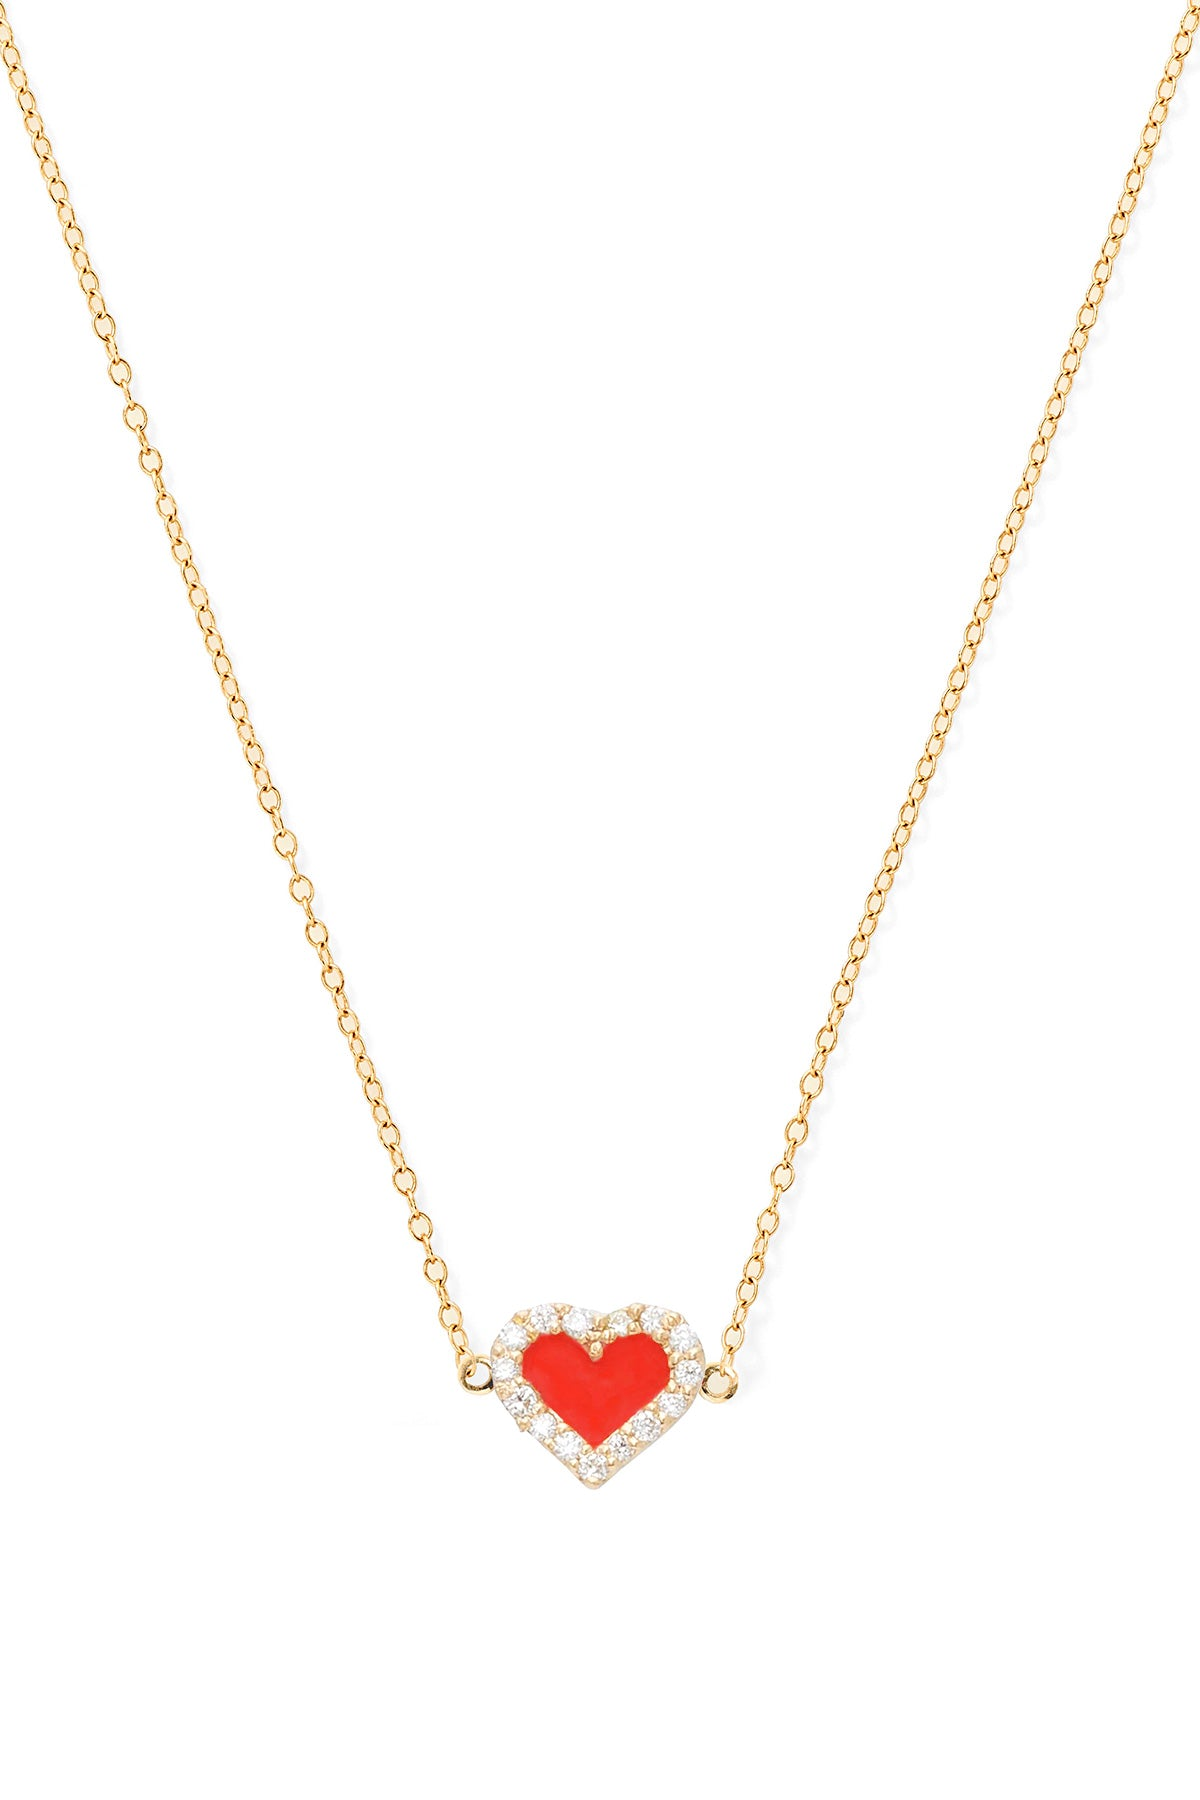 Heart Diamond Necklace - In Stock